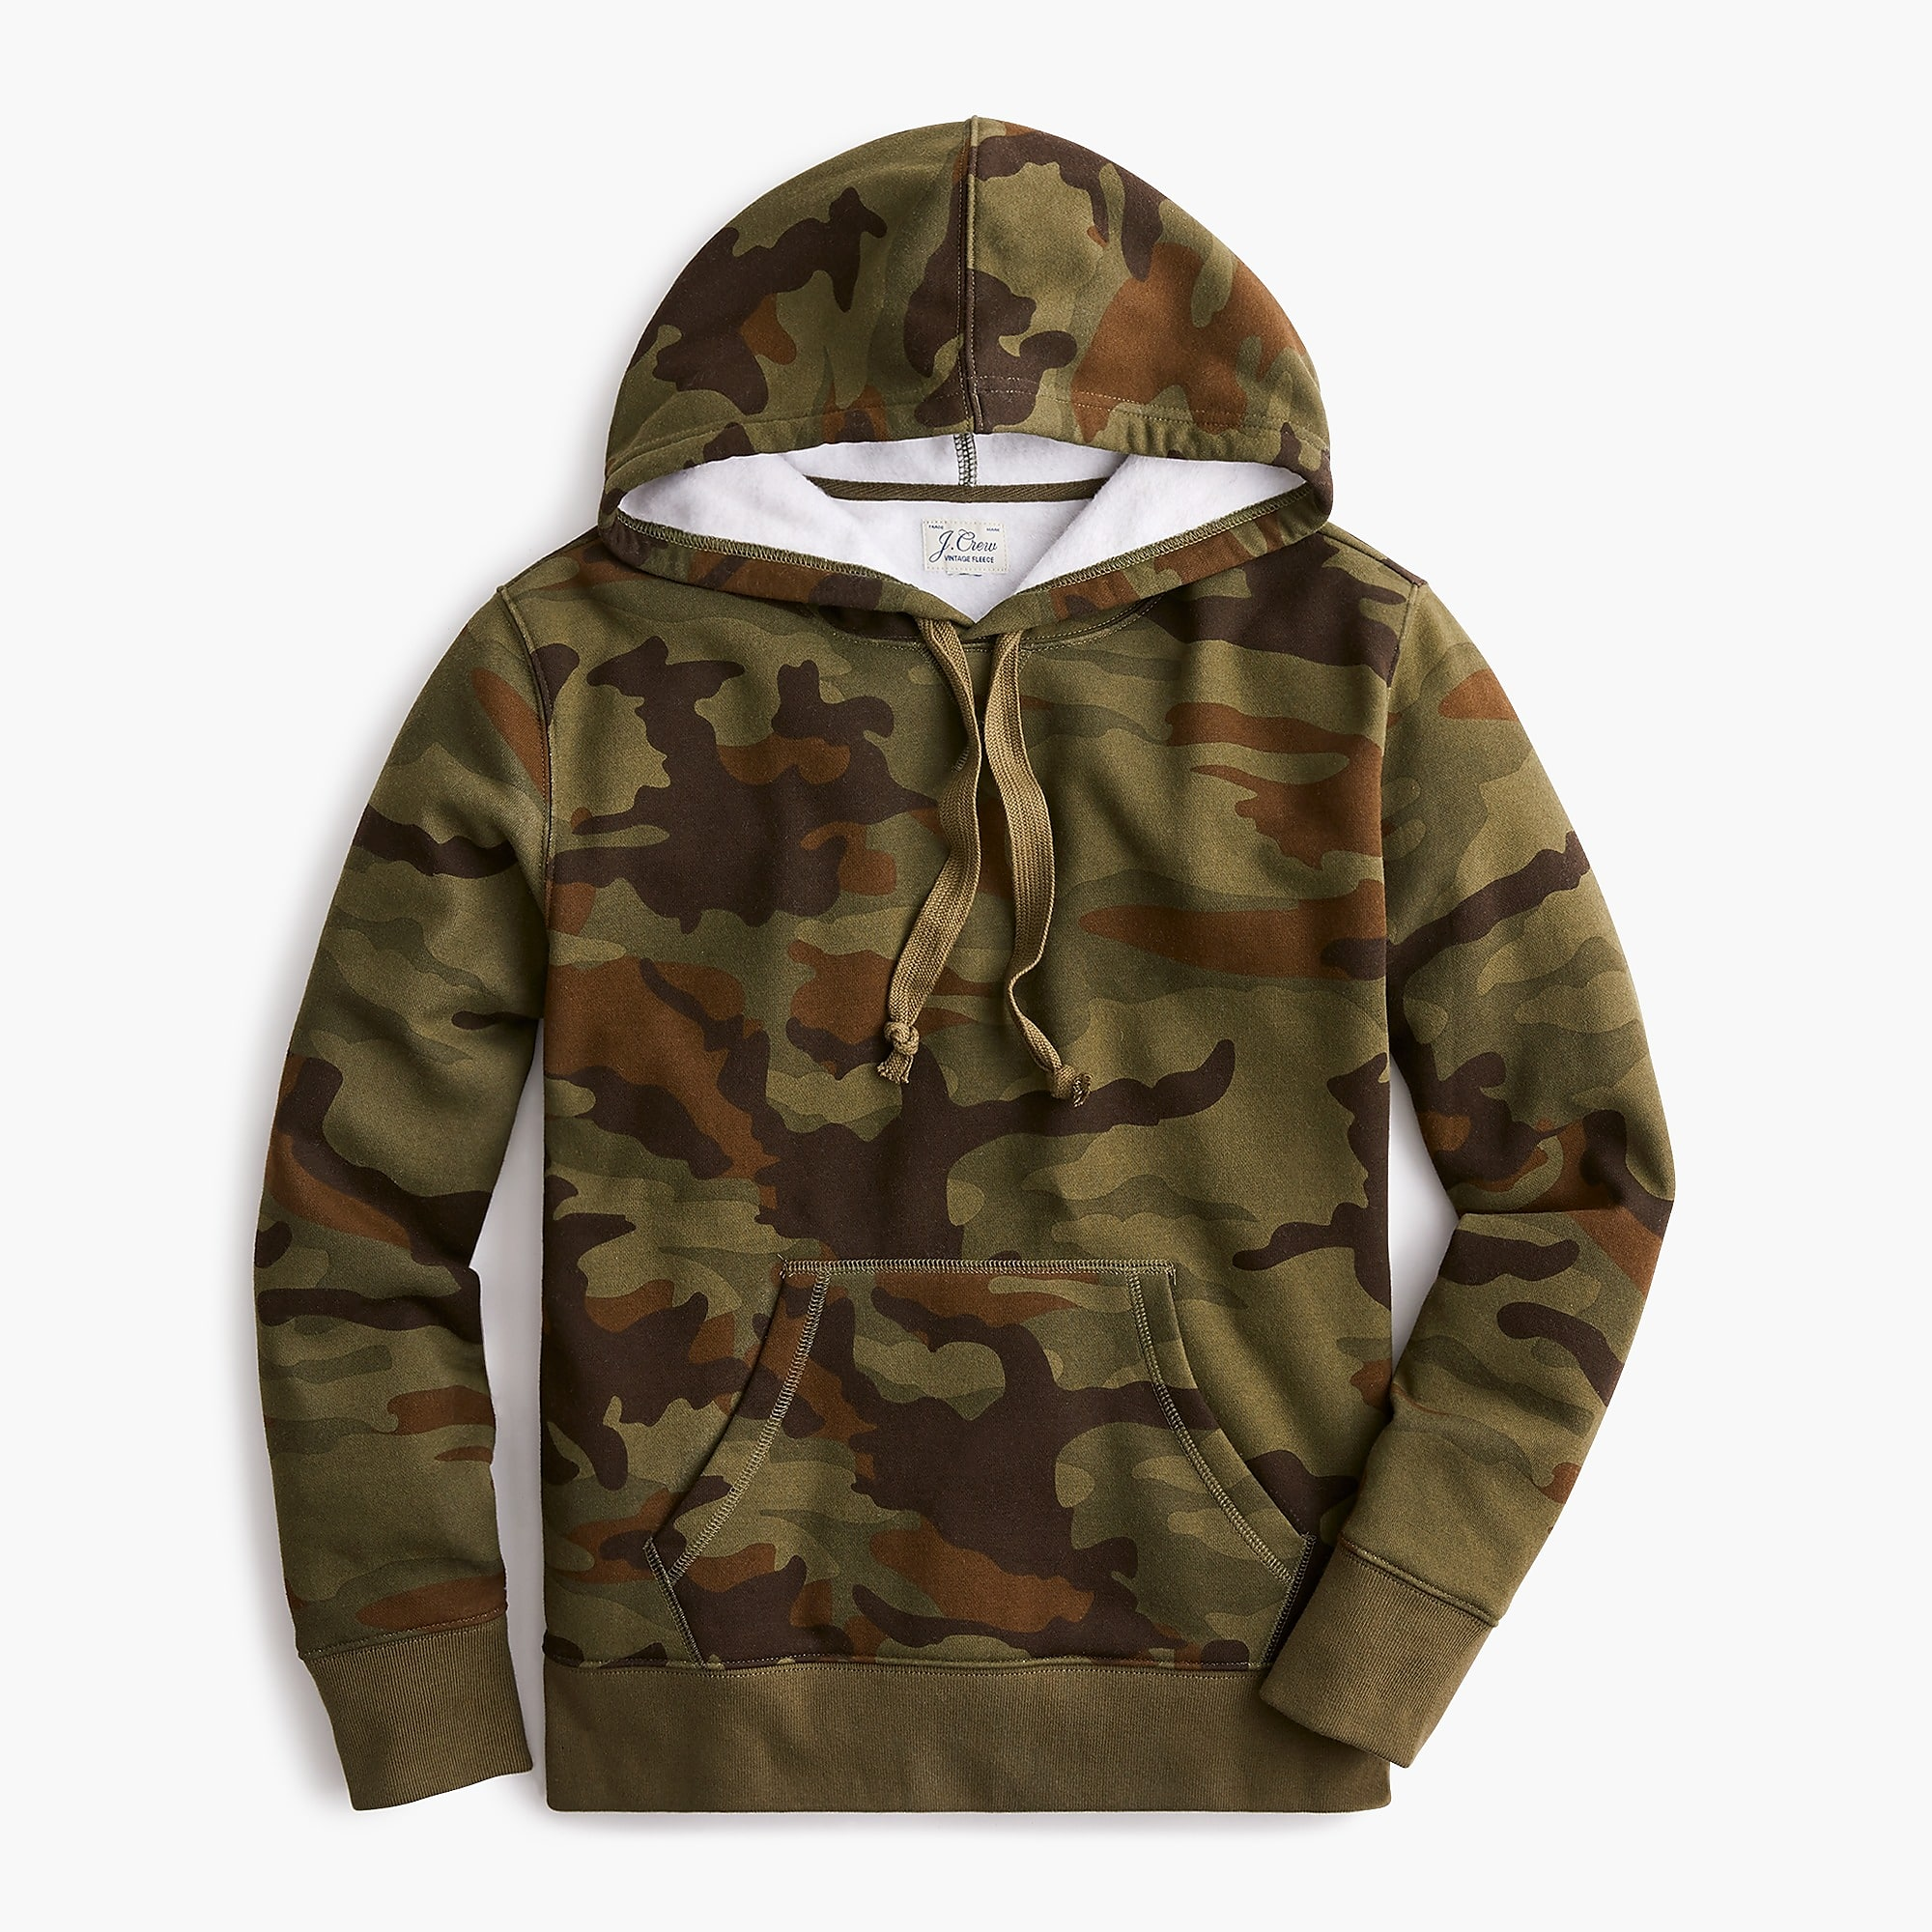 Supercozy fleece hoodie sweatshirt in camo